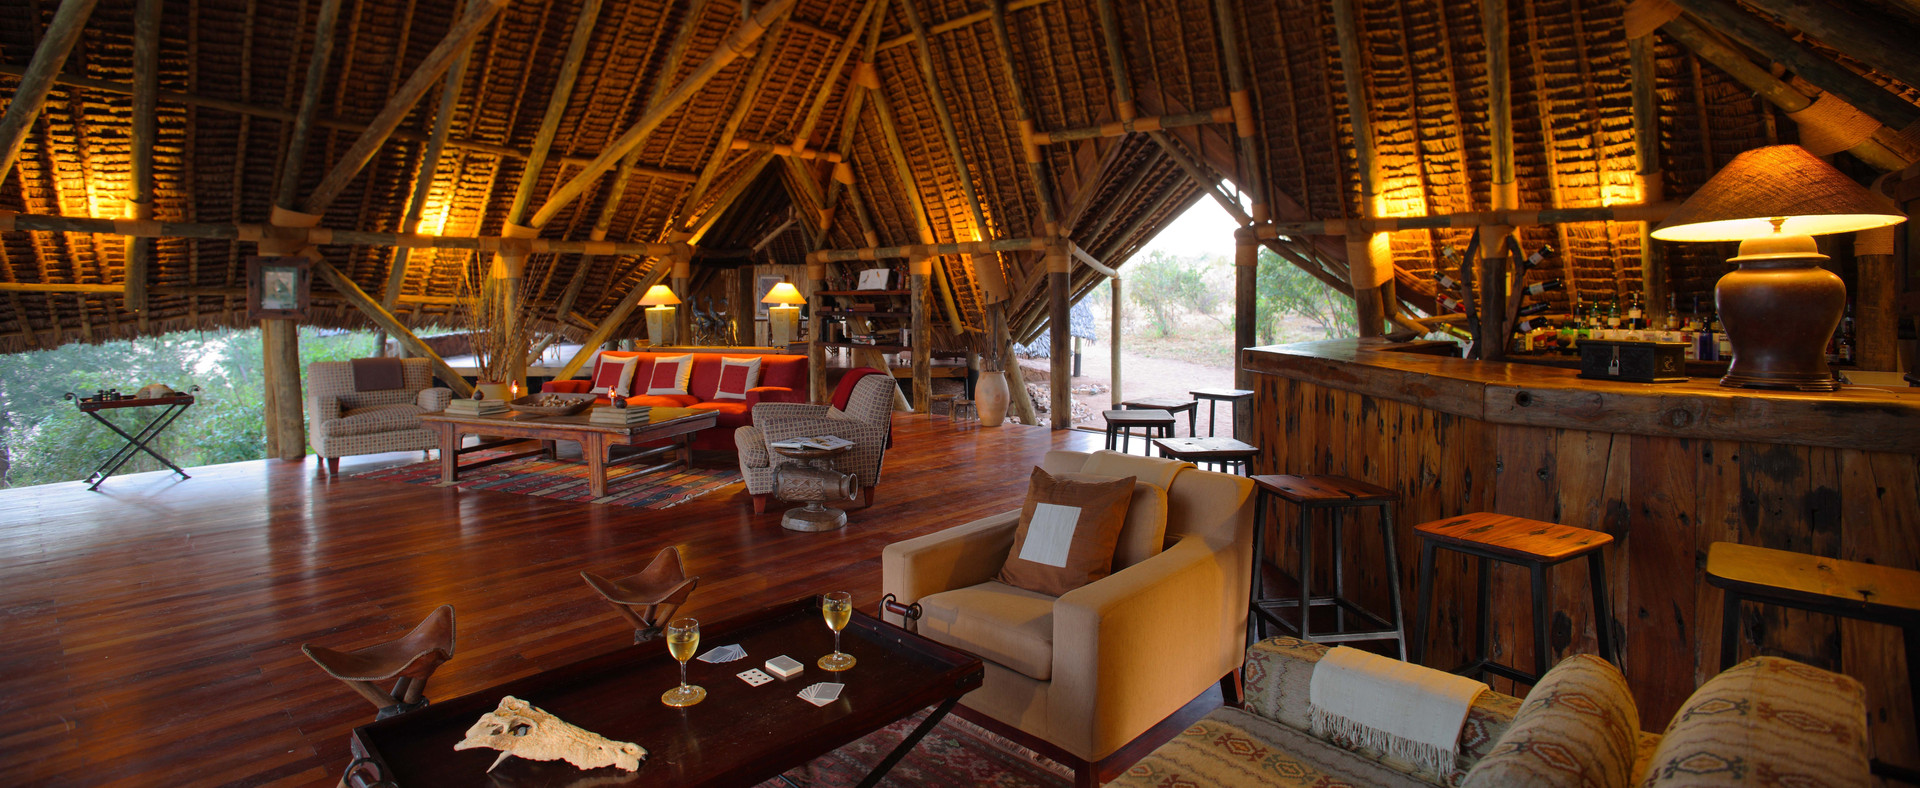 Lounge and bar area at Jongomero, Ruaha